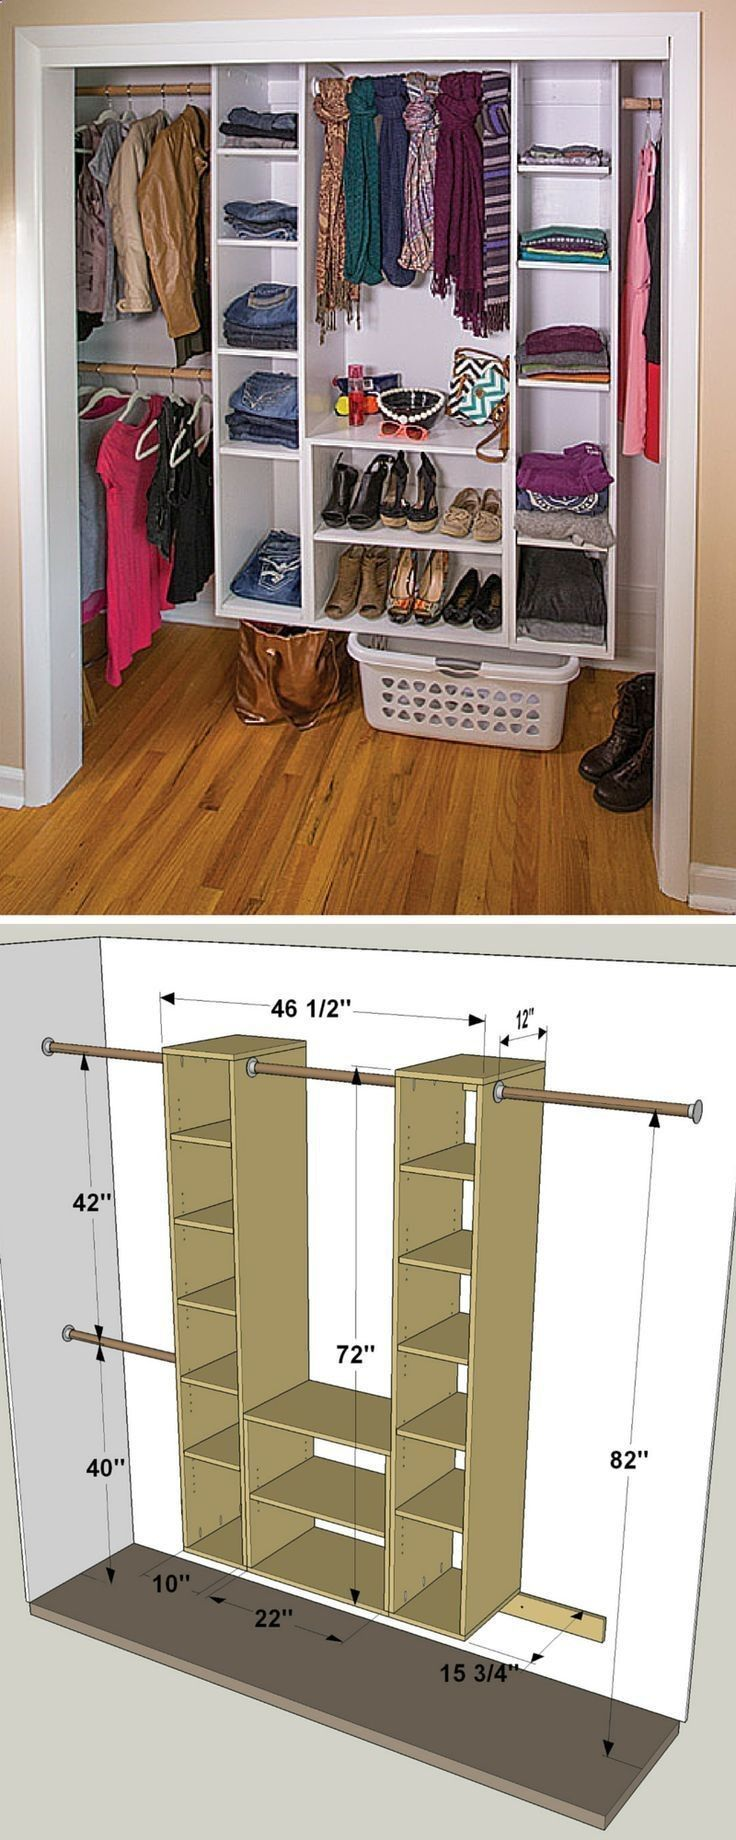 This Diy Closet Organizer Makes It Easy To Turn A Chaotic Closet Into A Clean Organized Space It S Made Up Of A Coup Closet Remodel Diy Closet Closet Bedroom